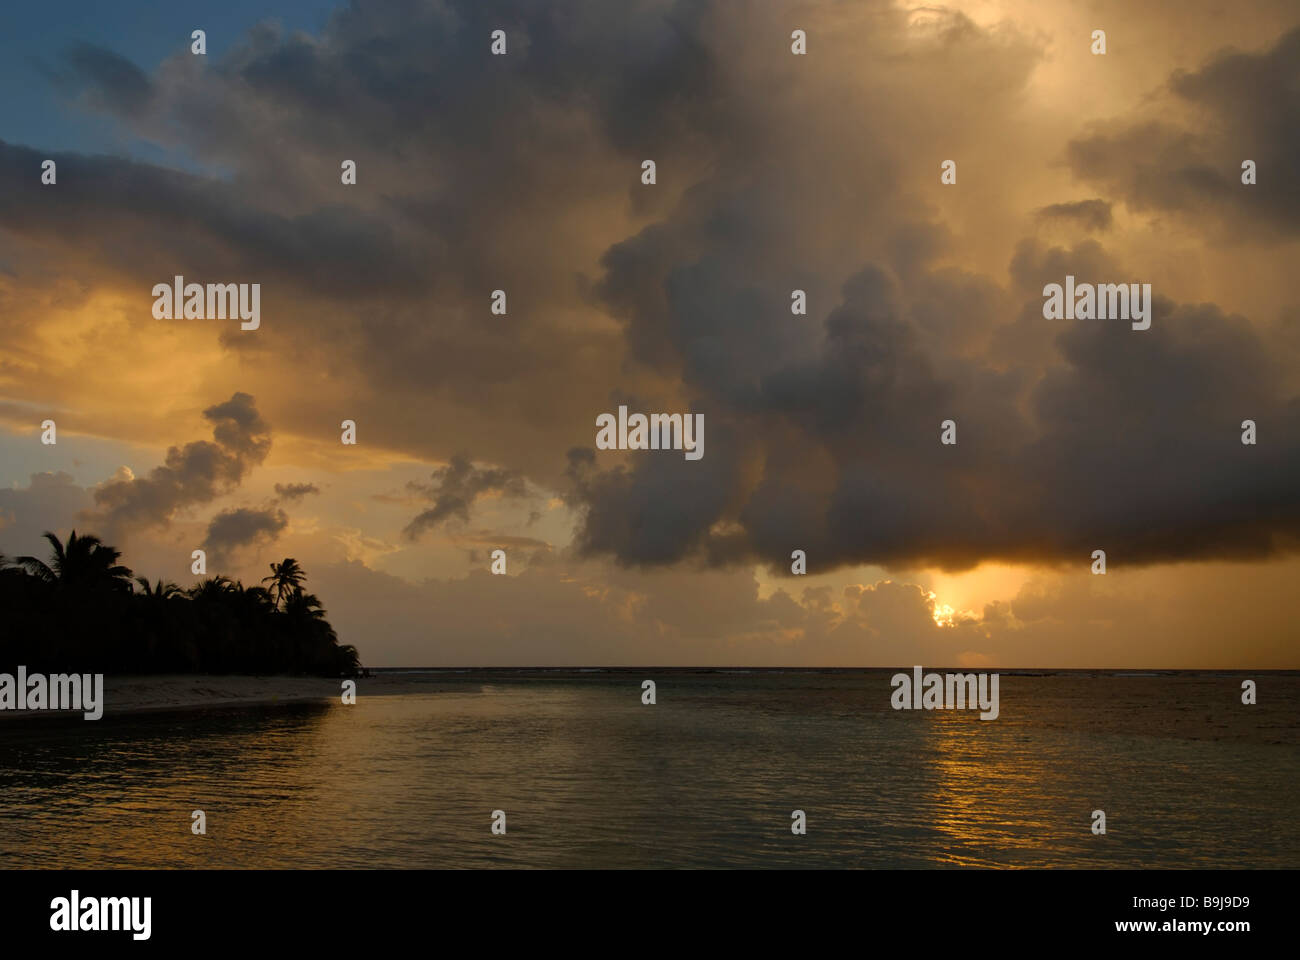 Sunrise over the Caribbean Sea, South Water Caye, Caribbean atoll, Belize, Central America - Stock Image